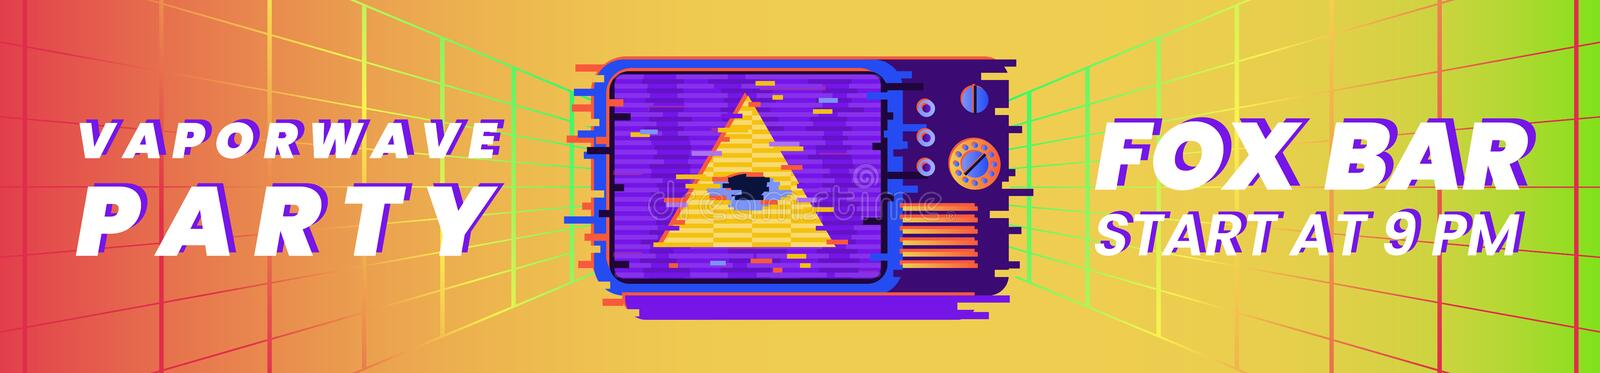 Vaporwave party horizontal banner template with all-seeing eye and old TV. Vaporwave party horizontal banner template with all-seeing eye and old TV on bright vector illustration